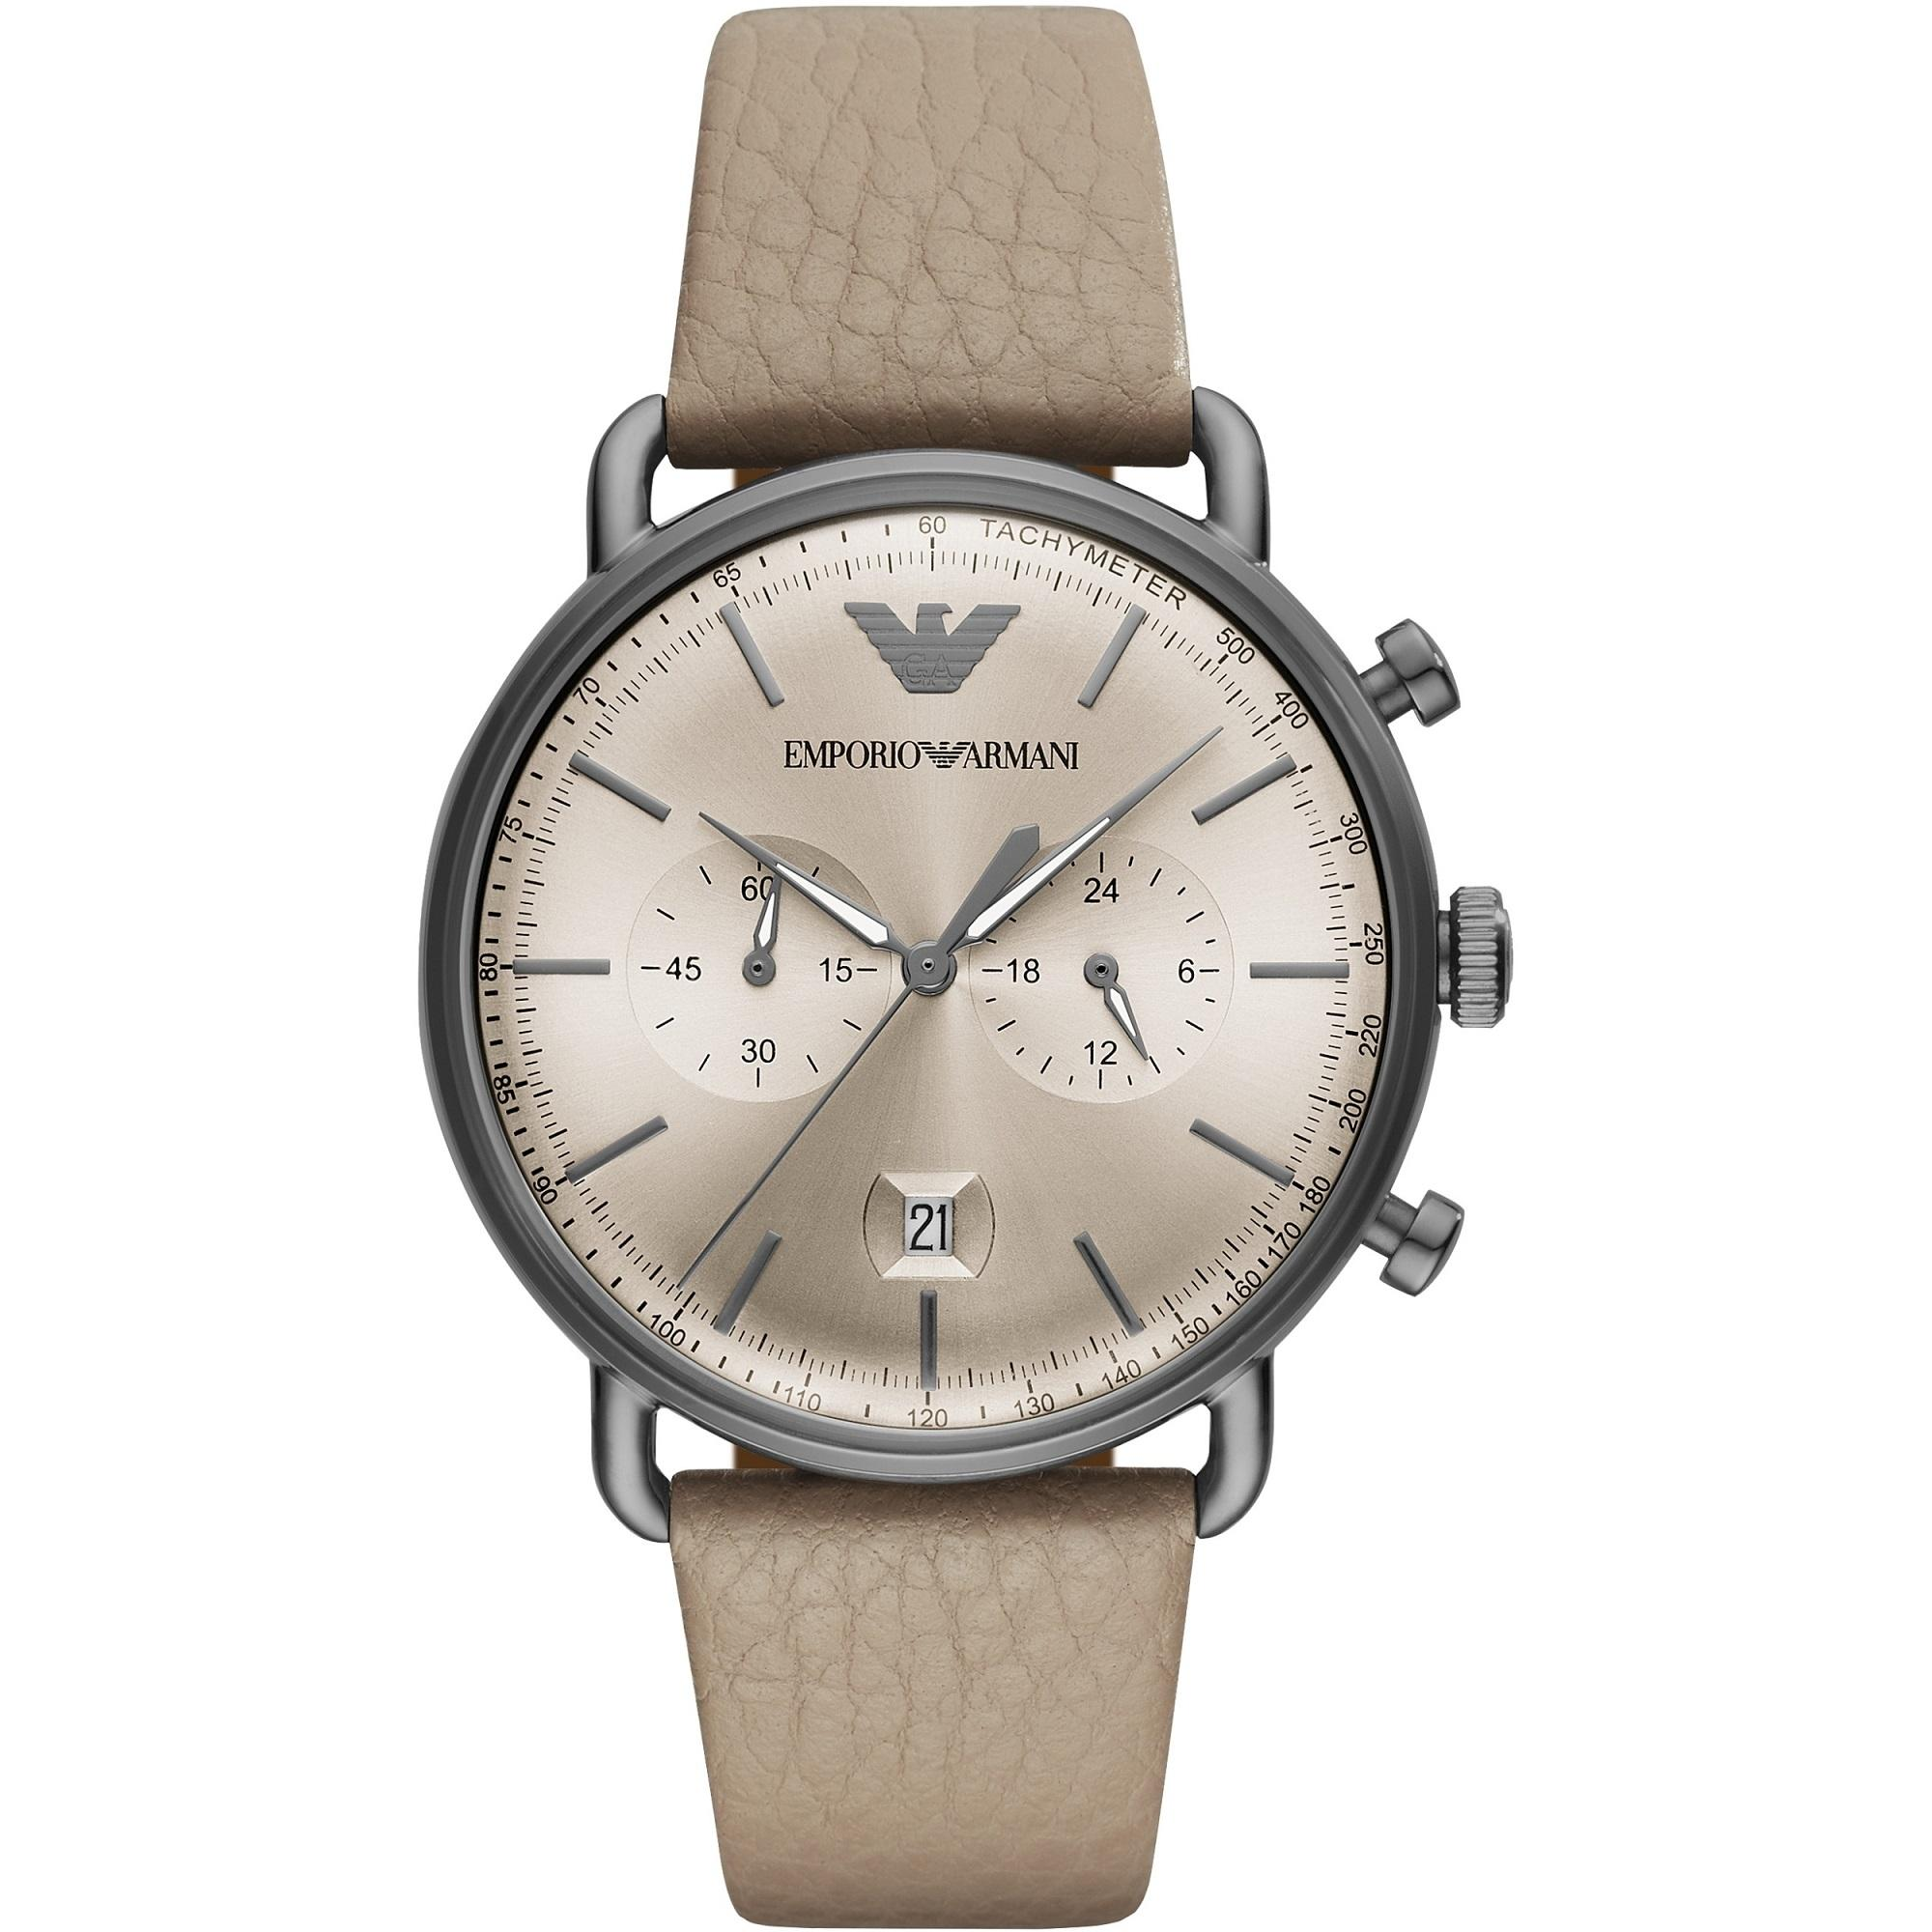 c901c9003 Buy Emporio Armani Men Watches at Best Prices Online in Pakistan ...